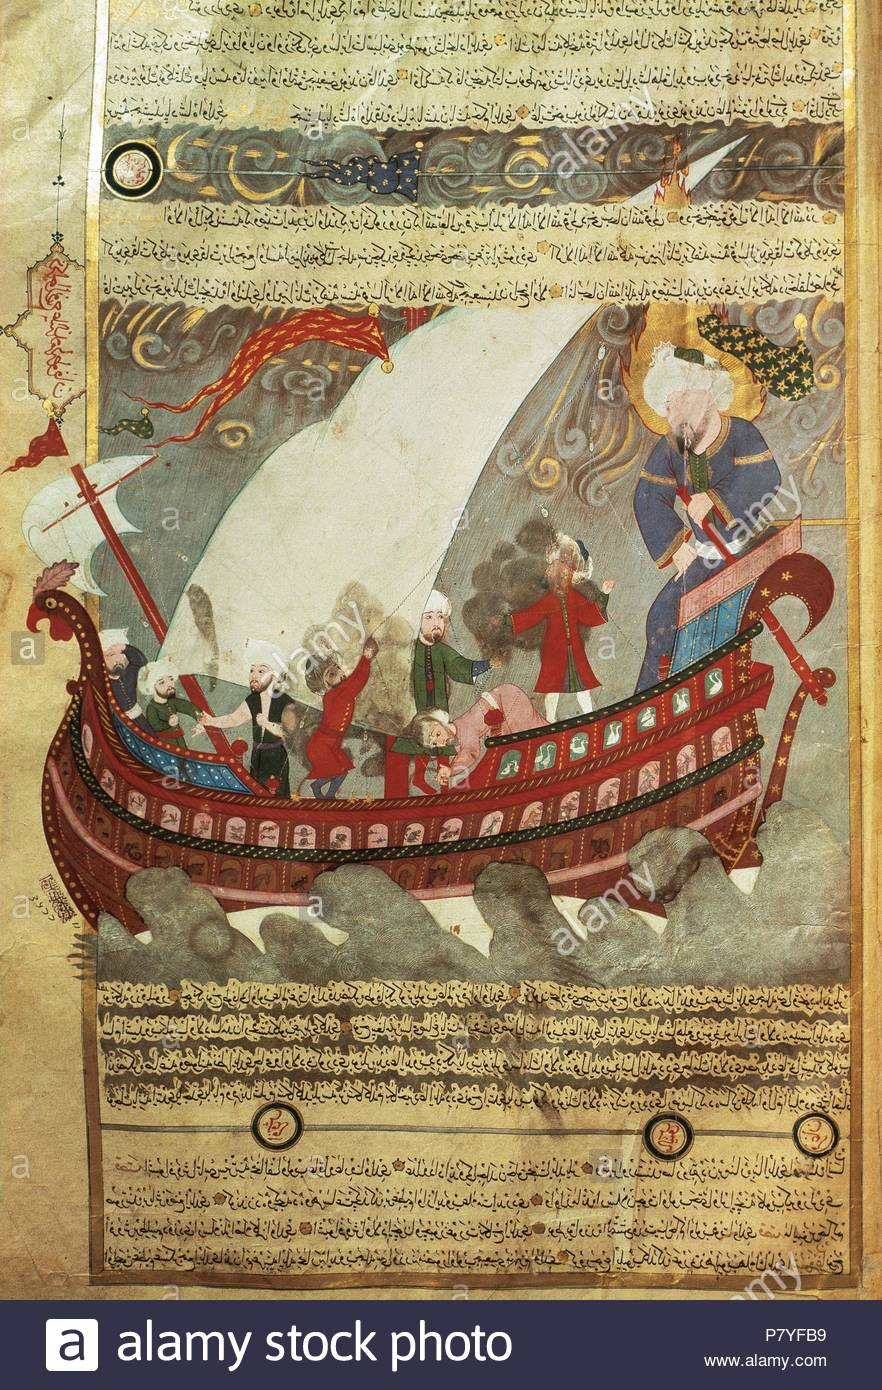 Noah's Ark revolves around the Kaaba (Kaaba) in Mecca, submerged by the universal flood. Miniature, 16th century. Topkapi Museum. Library. Istanbul Turkey. - Stock Image